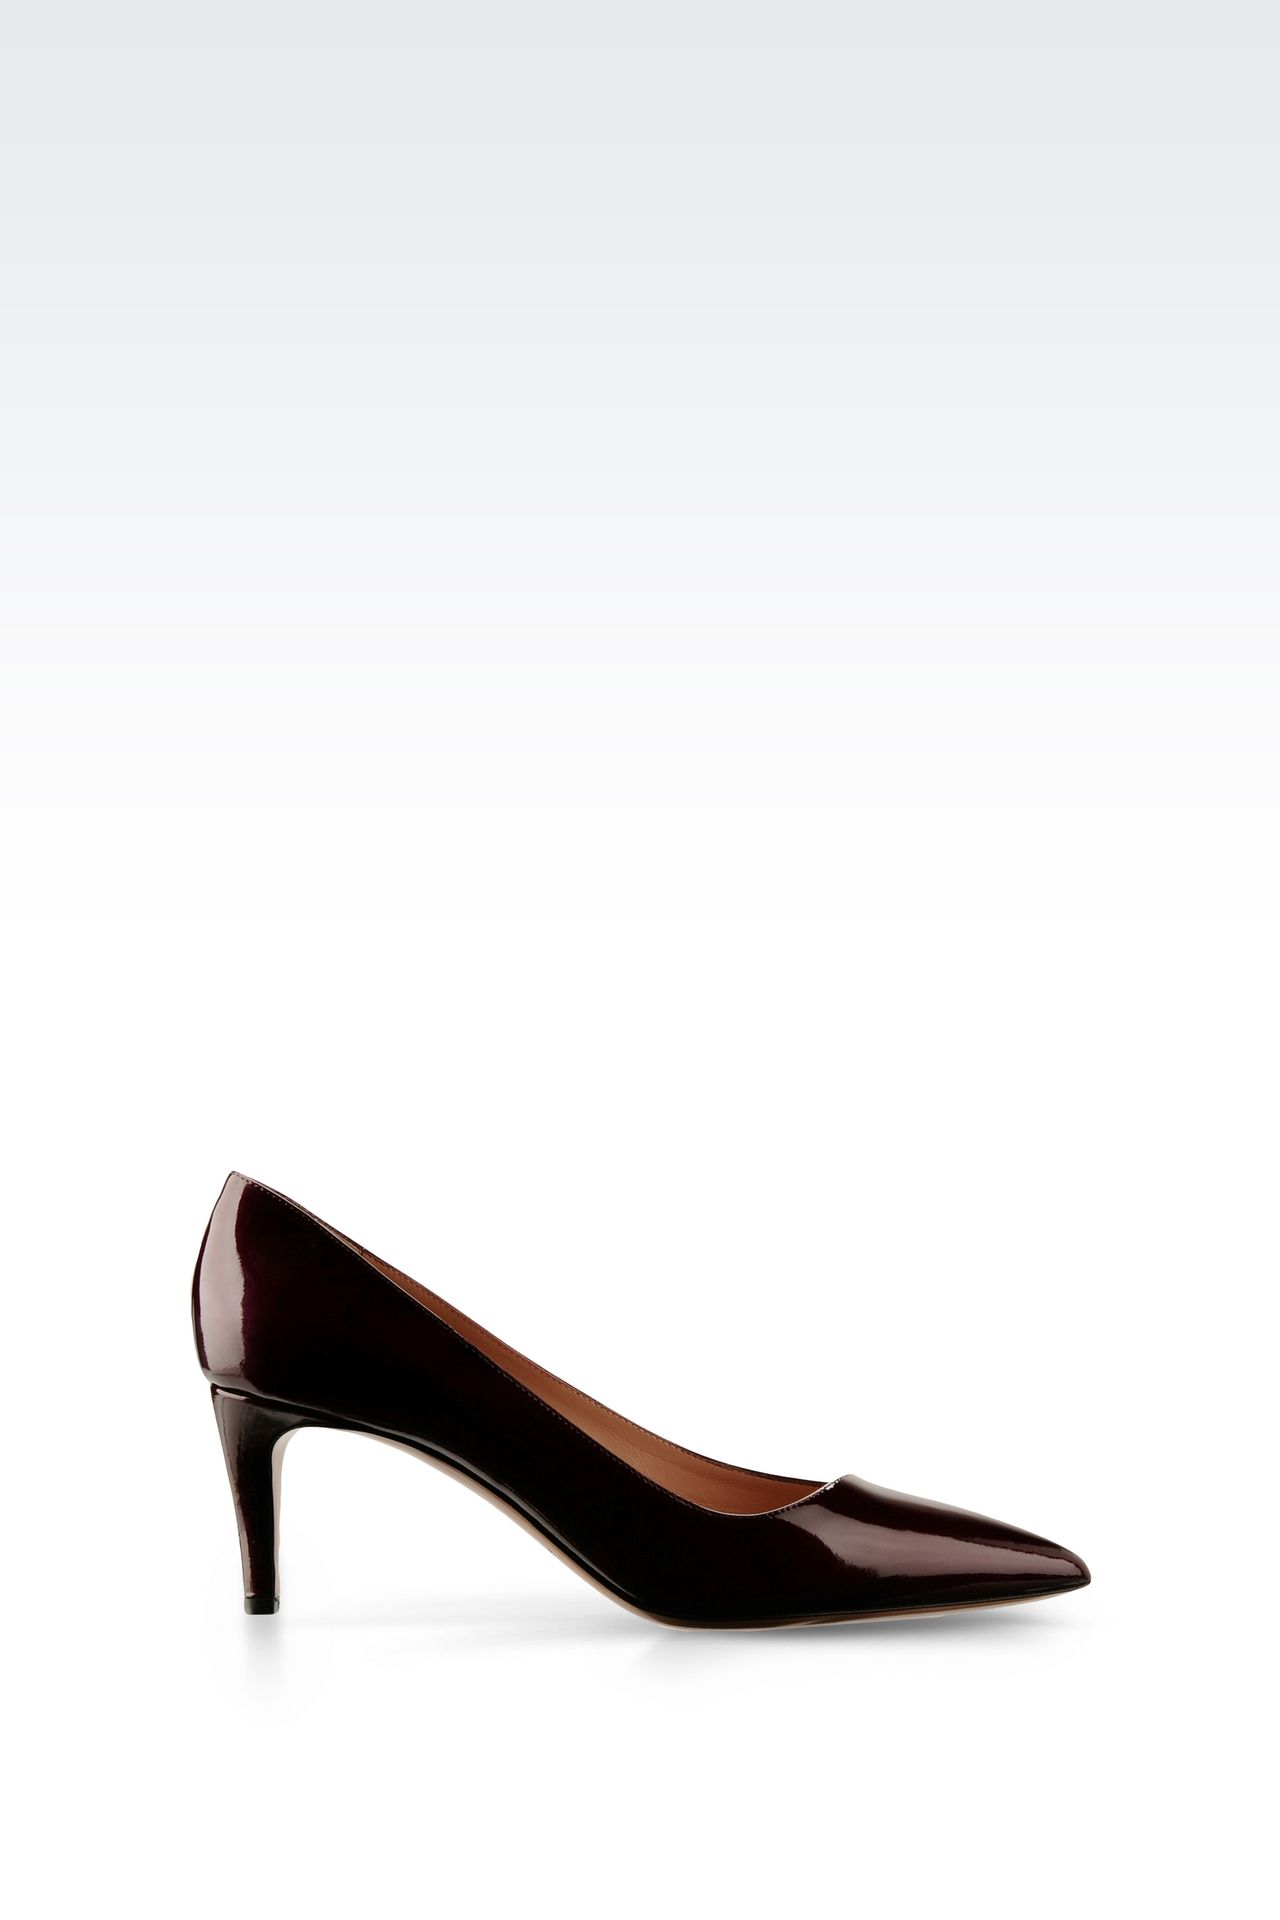 COURT SHOE IN SHINE EFFECT LEATHER: Pumps Women by Armani - 0